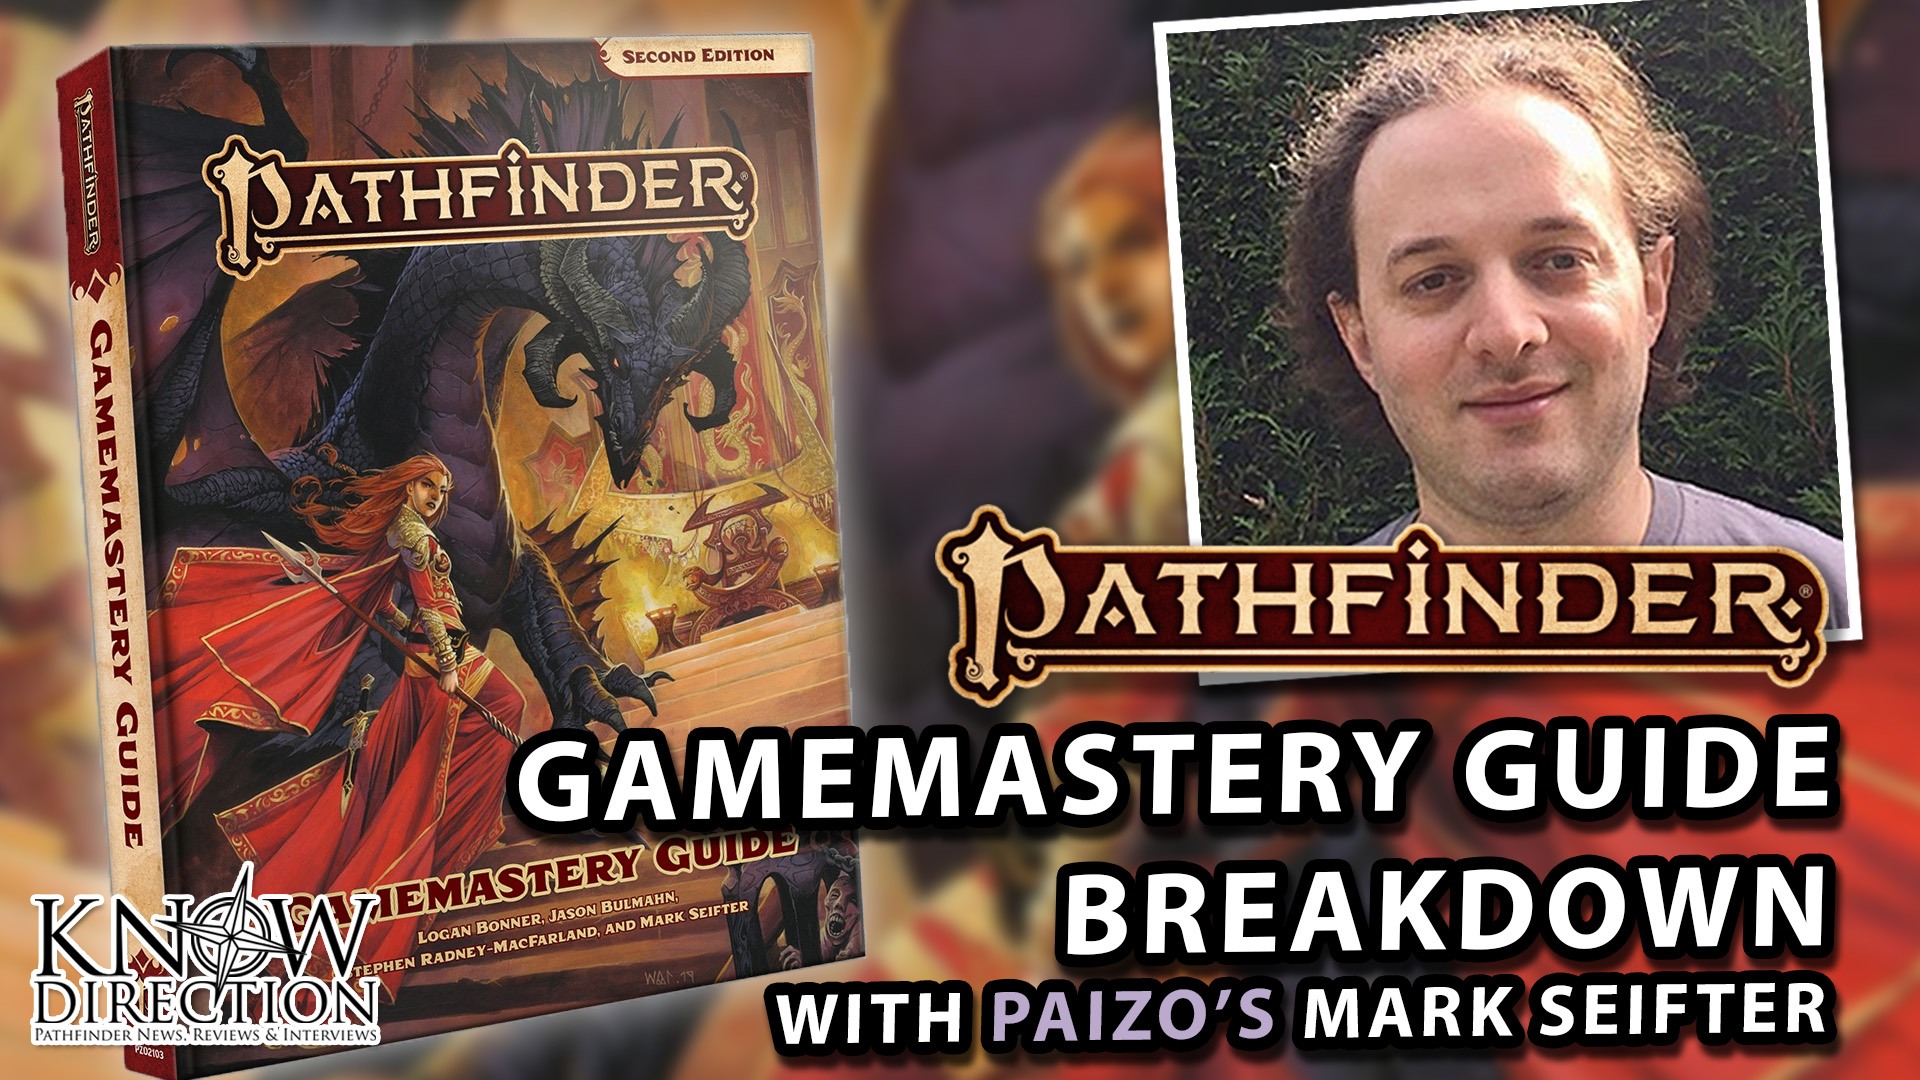 Gamemastery Guide Breakdown with Paizo's Mark Seifter - Know Direction 222